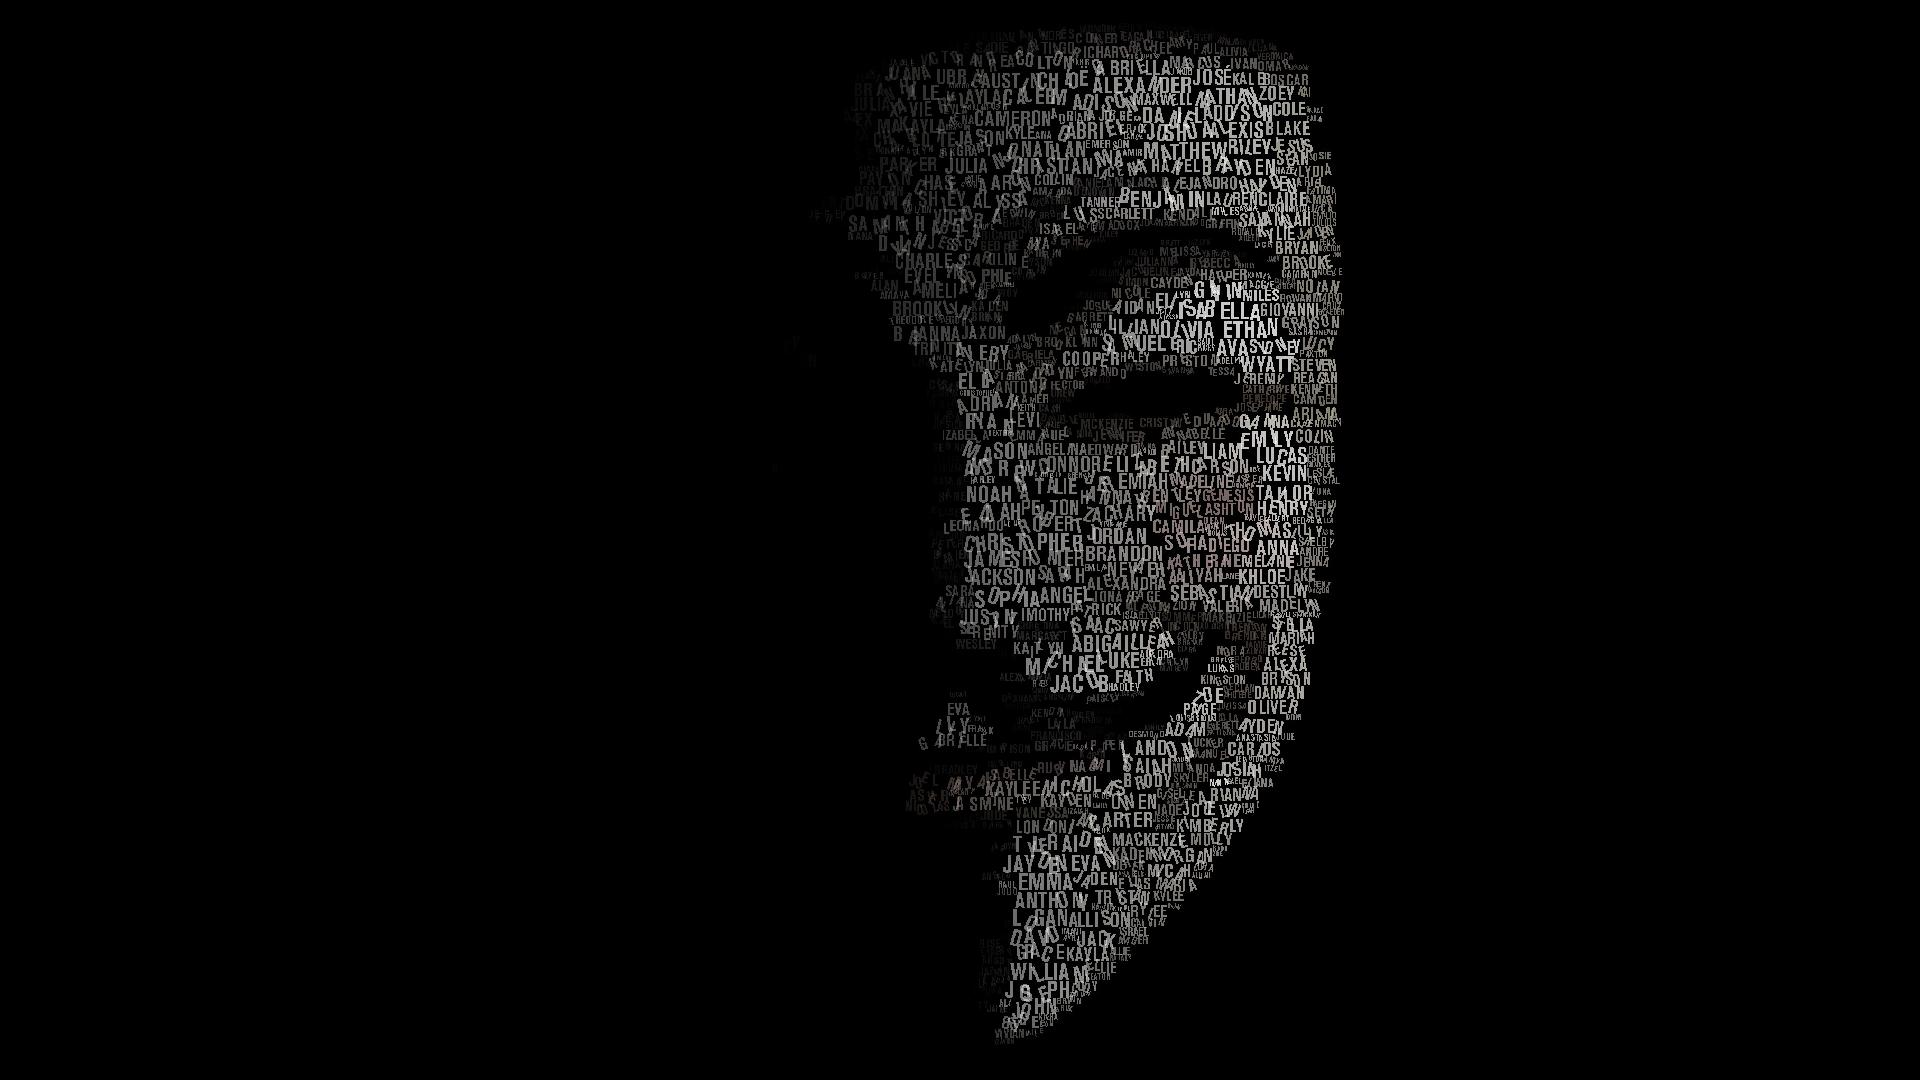 HD Anonymous Wallpaper 1920x1080